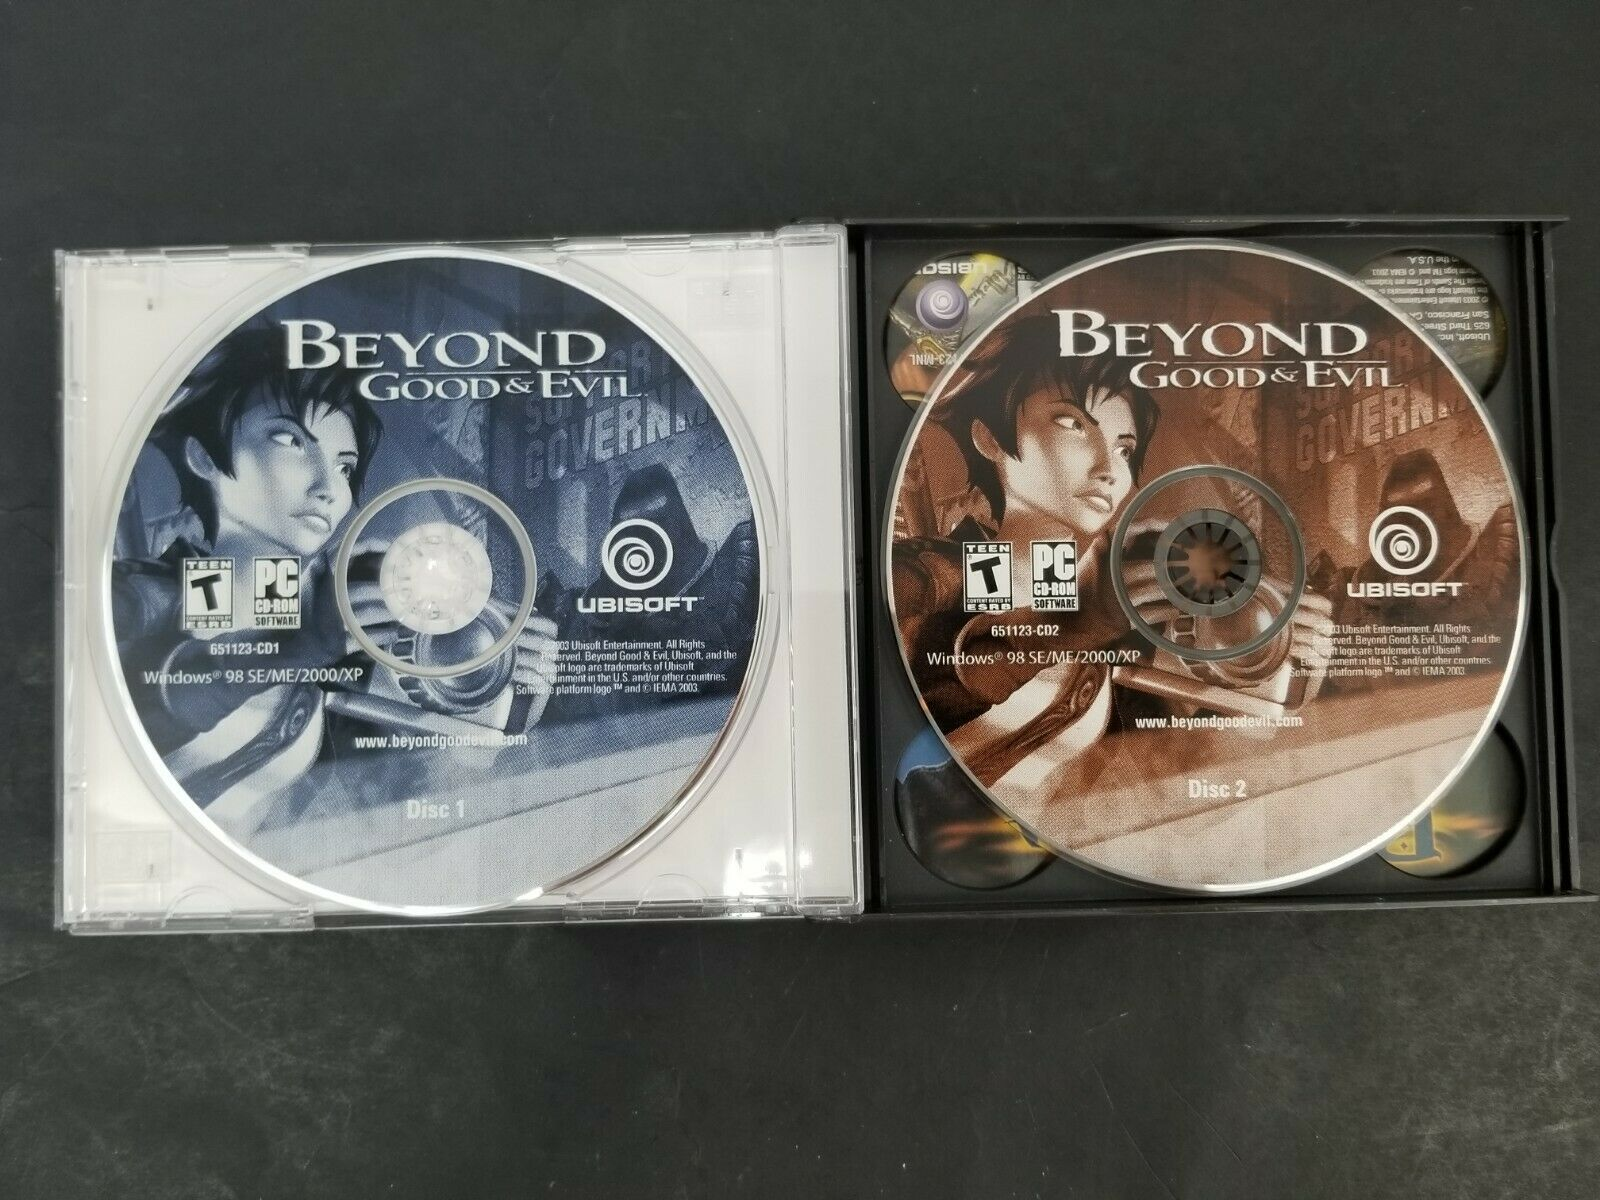 Beyond Good & Evil PC Game (PC CD-ROM, 2003) Rated (T) for Teen 651123 Ubisoft